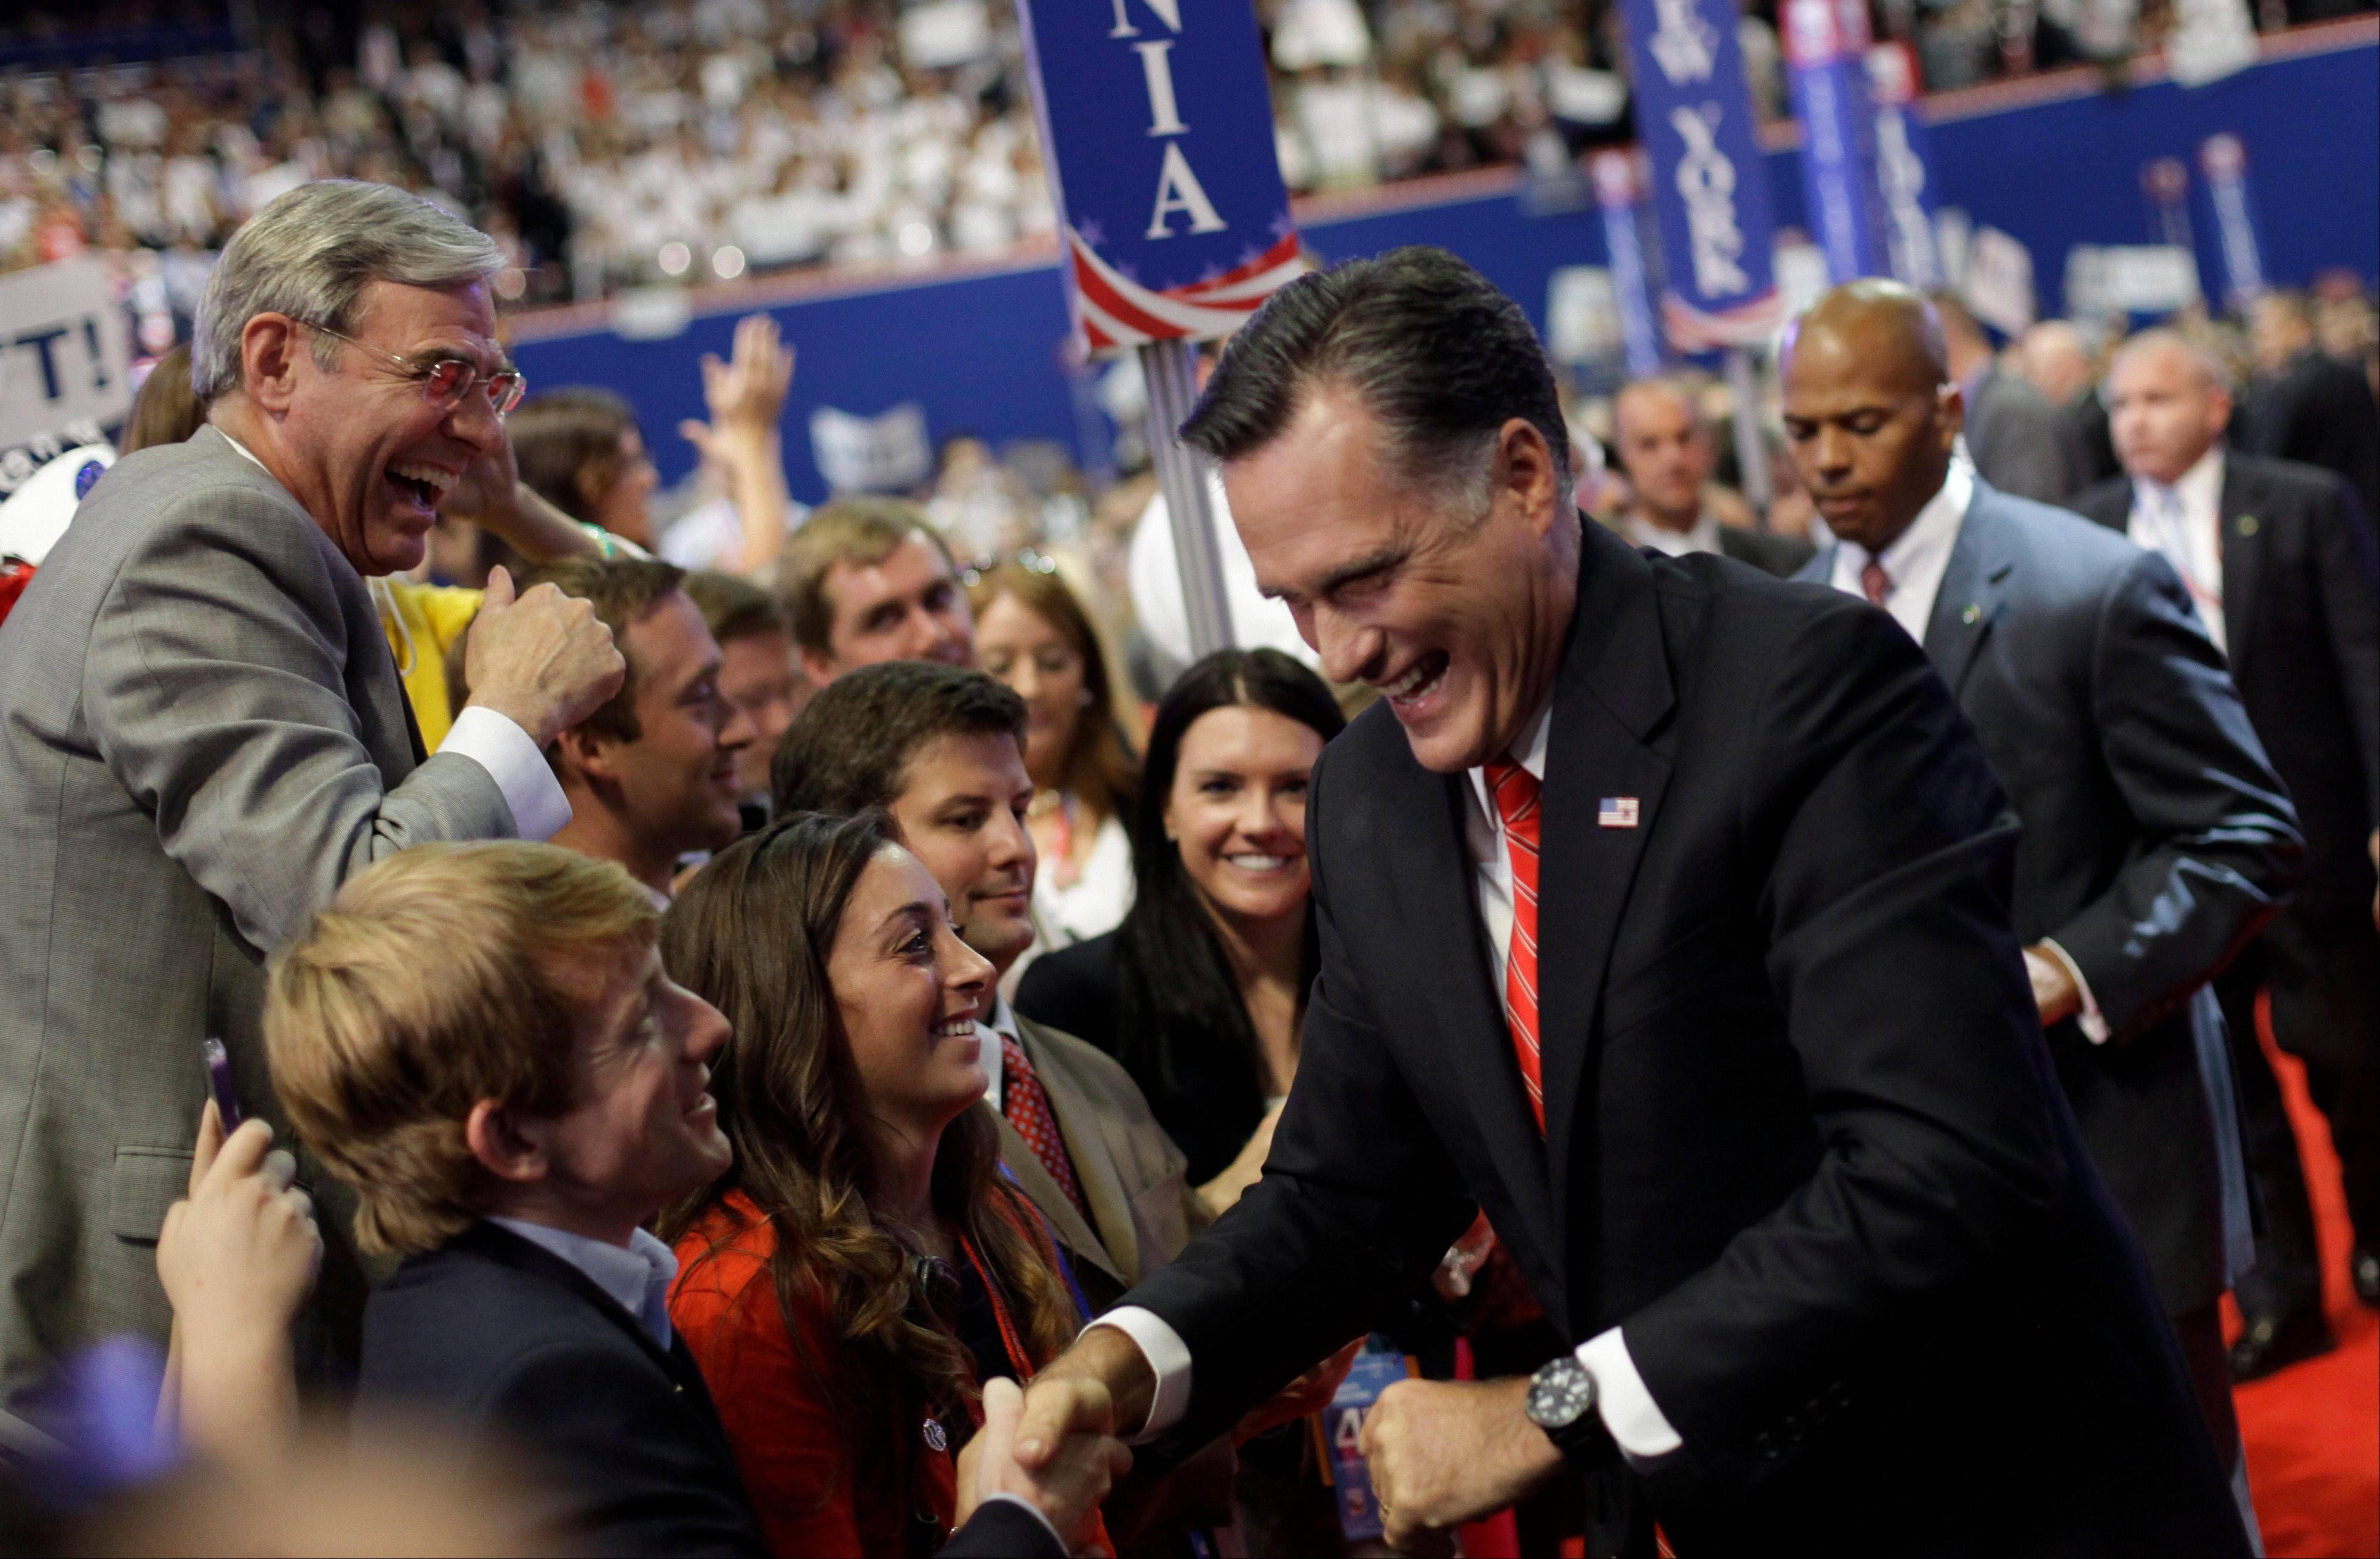 Republican presidential nominee Mitt Romney shakes hands of delegates before speaking at the Republican National Convention in Tampa, Fla., on Thursday, Aug. 30, 2012.